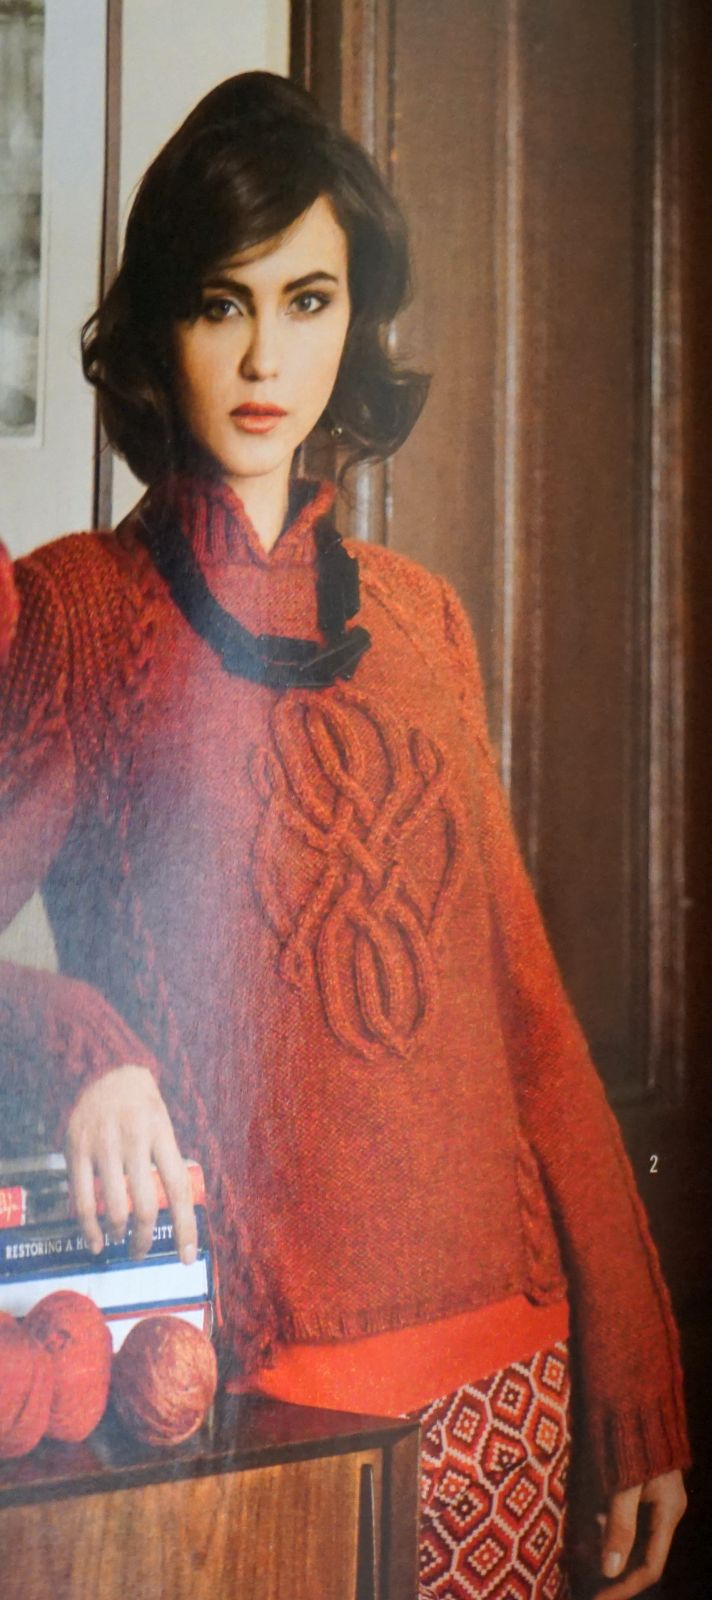 Details about ~ RARE VINTAGE OOP VOGUE KNITTING PATTERN MAGAZINE WINTER  2012 - 2013 ~